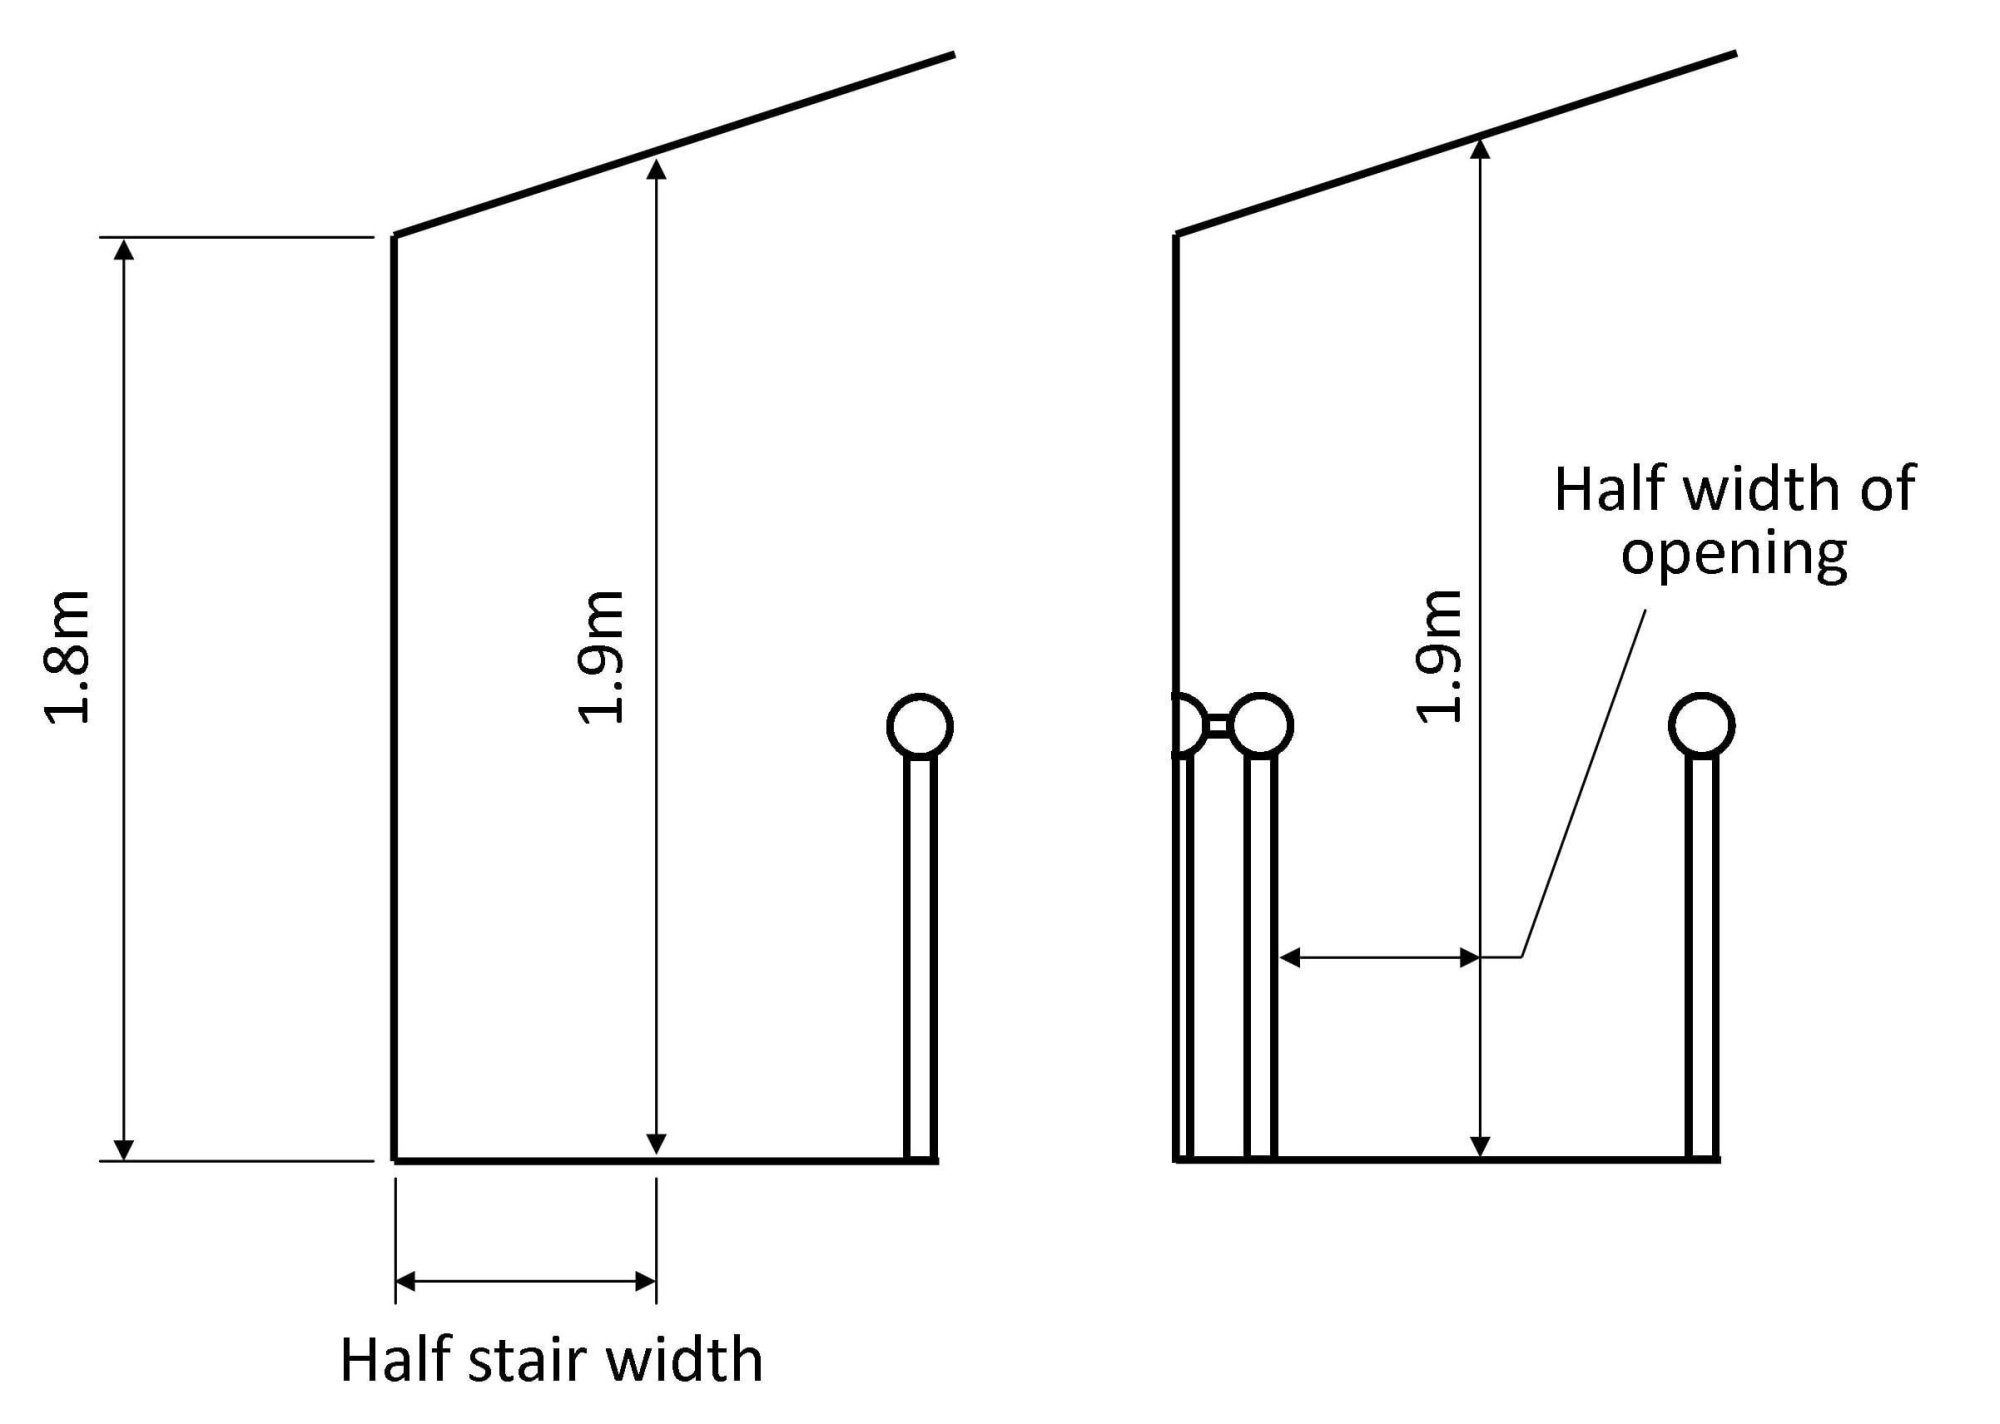 hight resolution of for loft conversions the headroom will pass the building regulations if the centre of the stair width is 1 9m reducing to 1 8m at the side of the stair